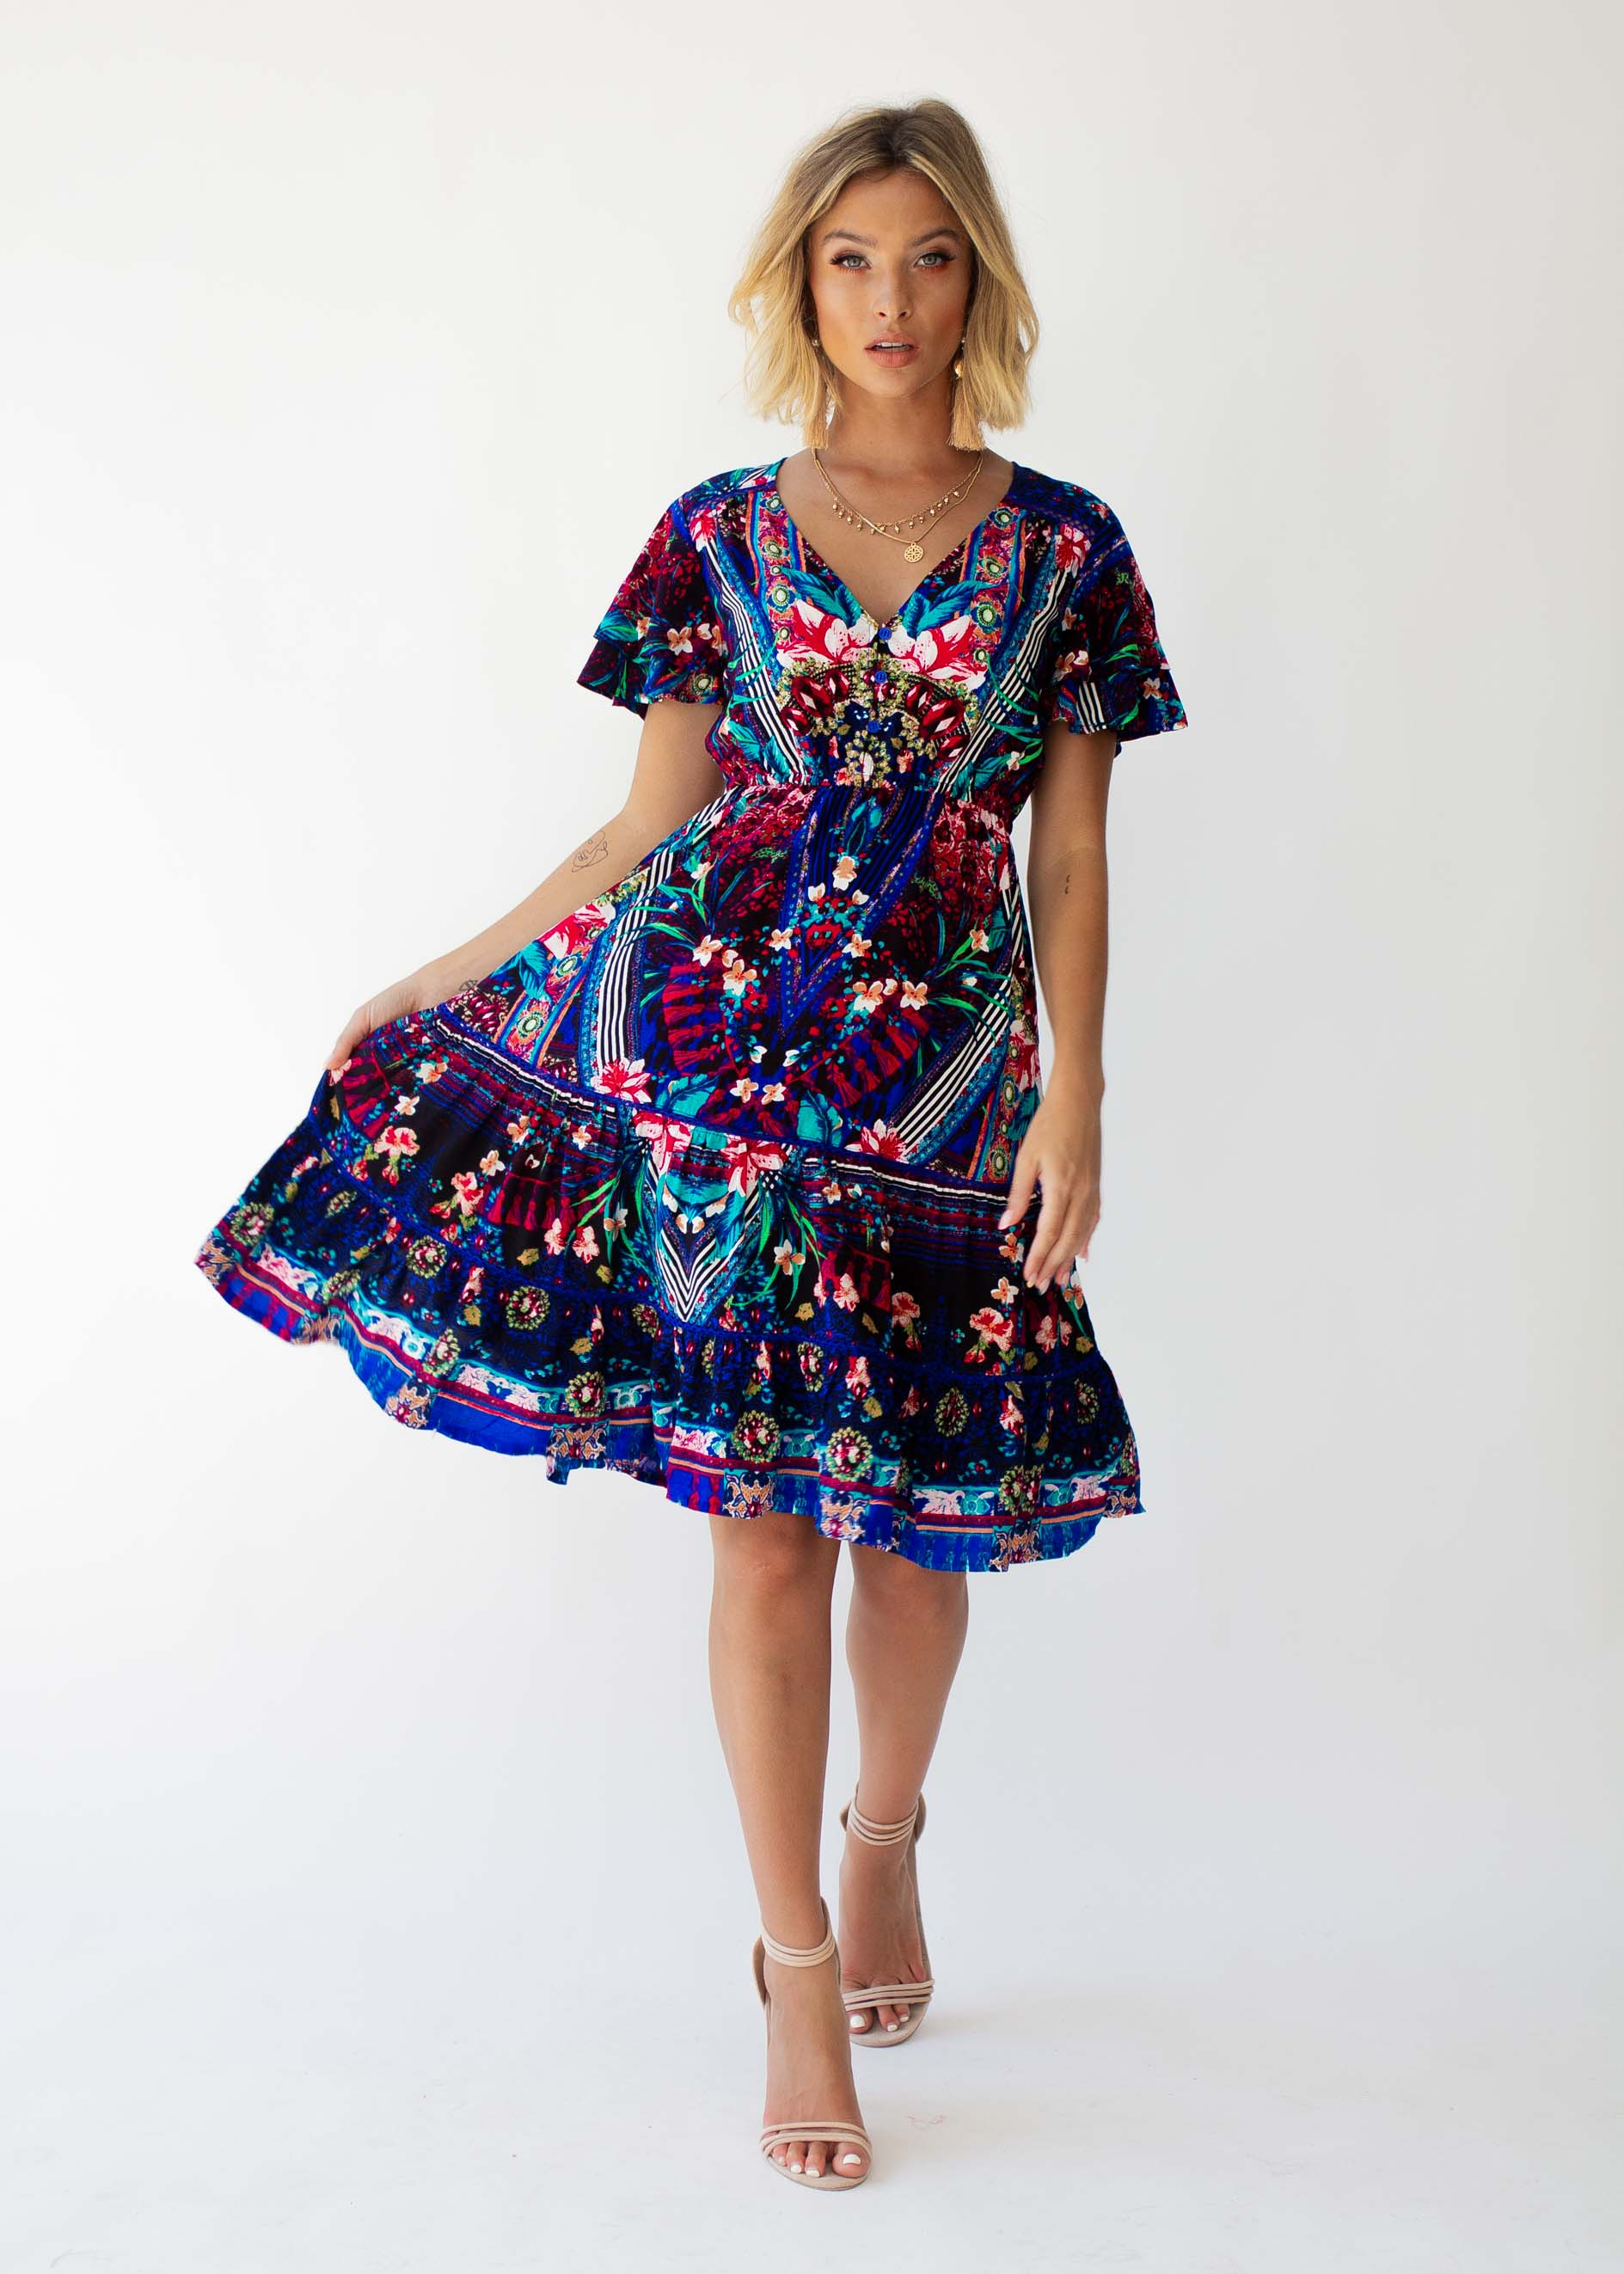 Precious Swing Dress - Rocco